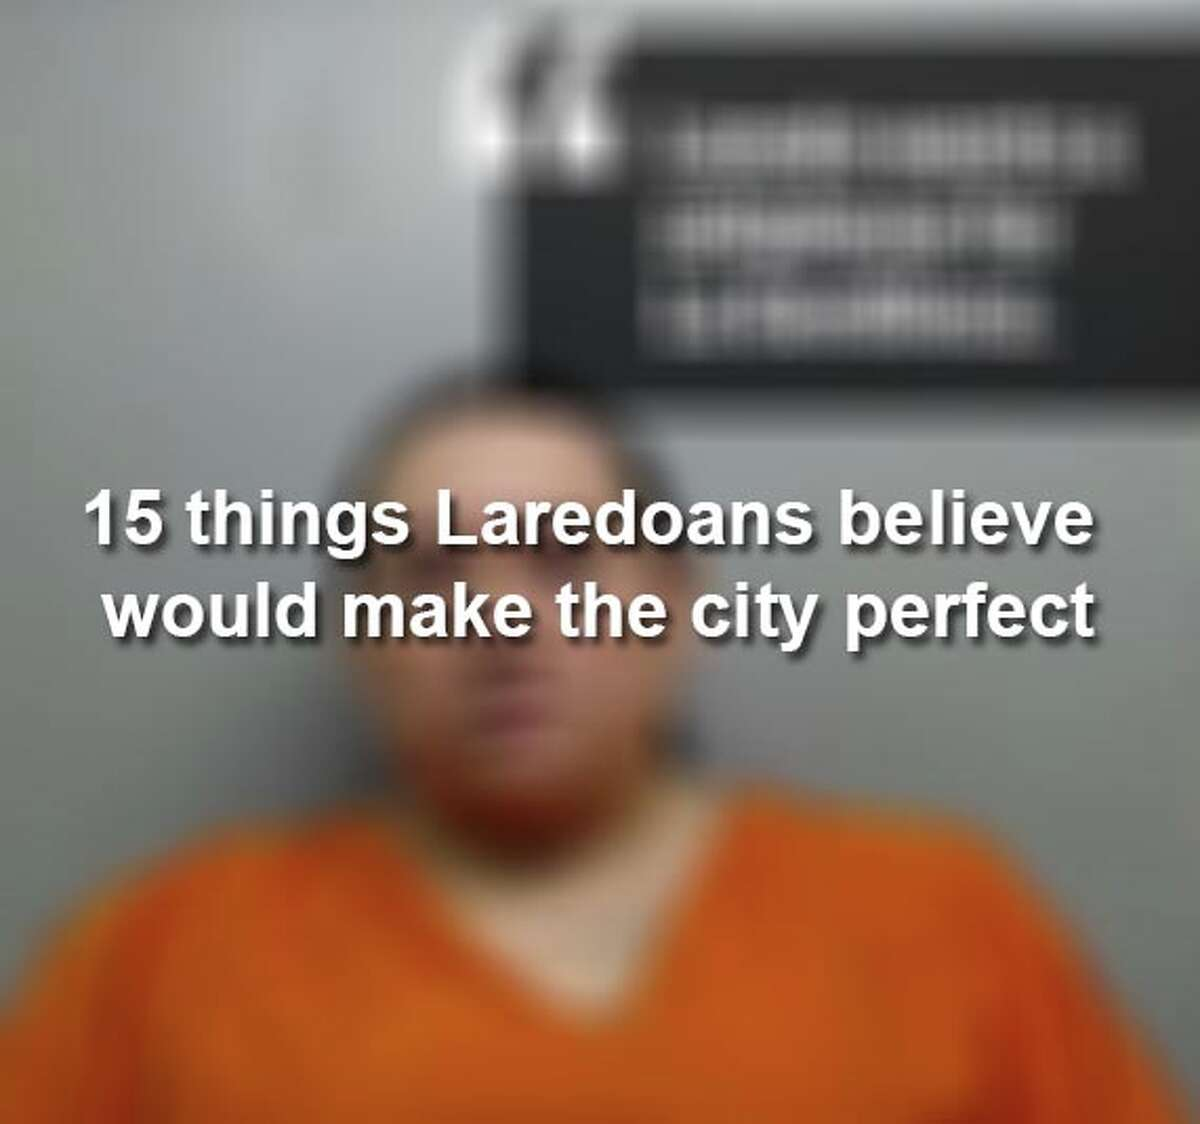 Keep scrolling to see what locals said Laredo needs to become the perfect city.